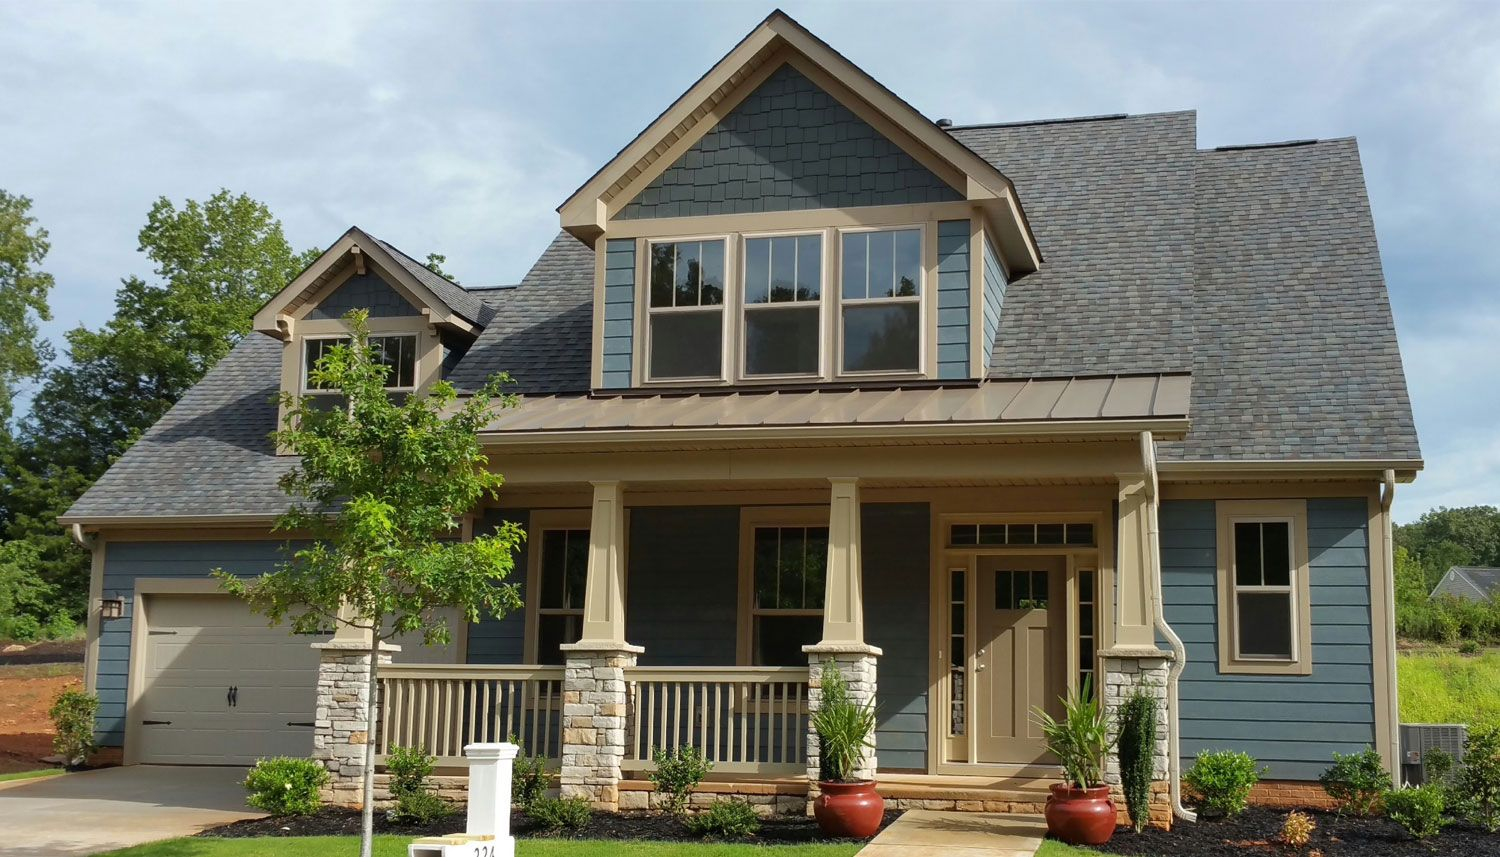 Single Family for Sale at Mare's Head - Stonehaven 101 Mares Head Place Taylors, South Carolina 29687 United States